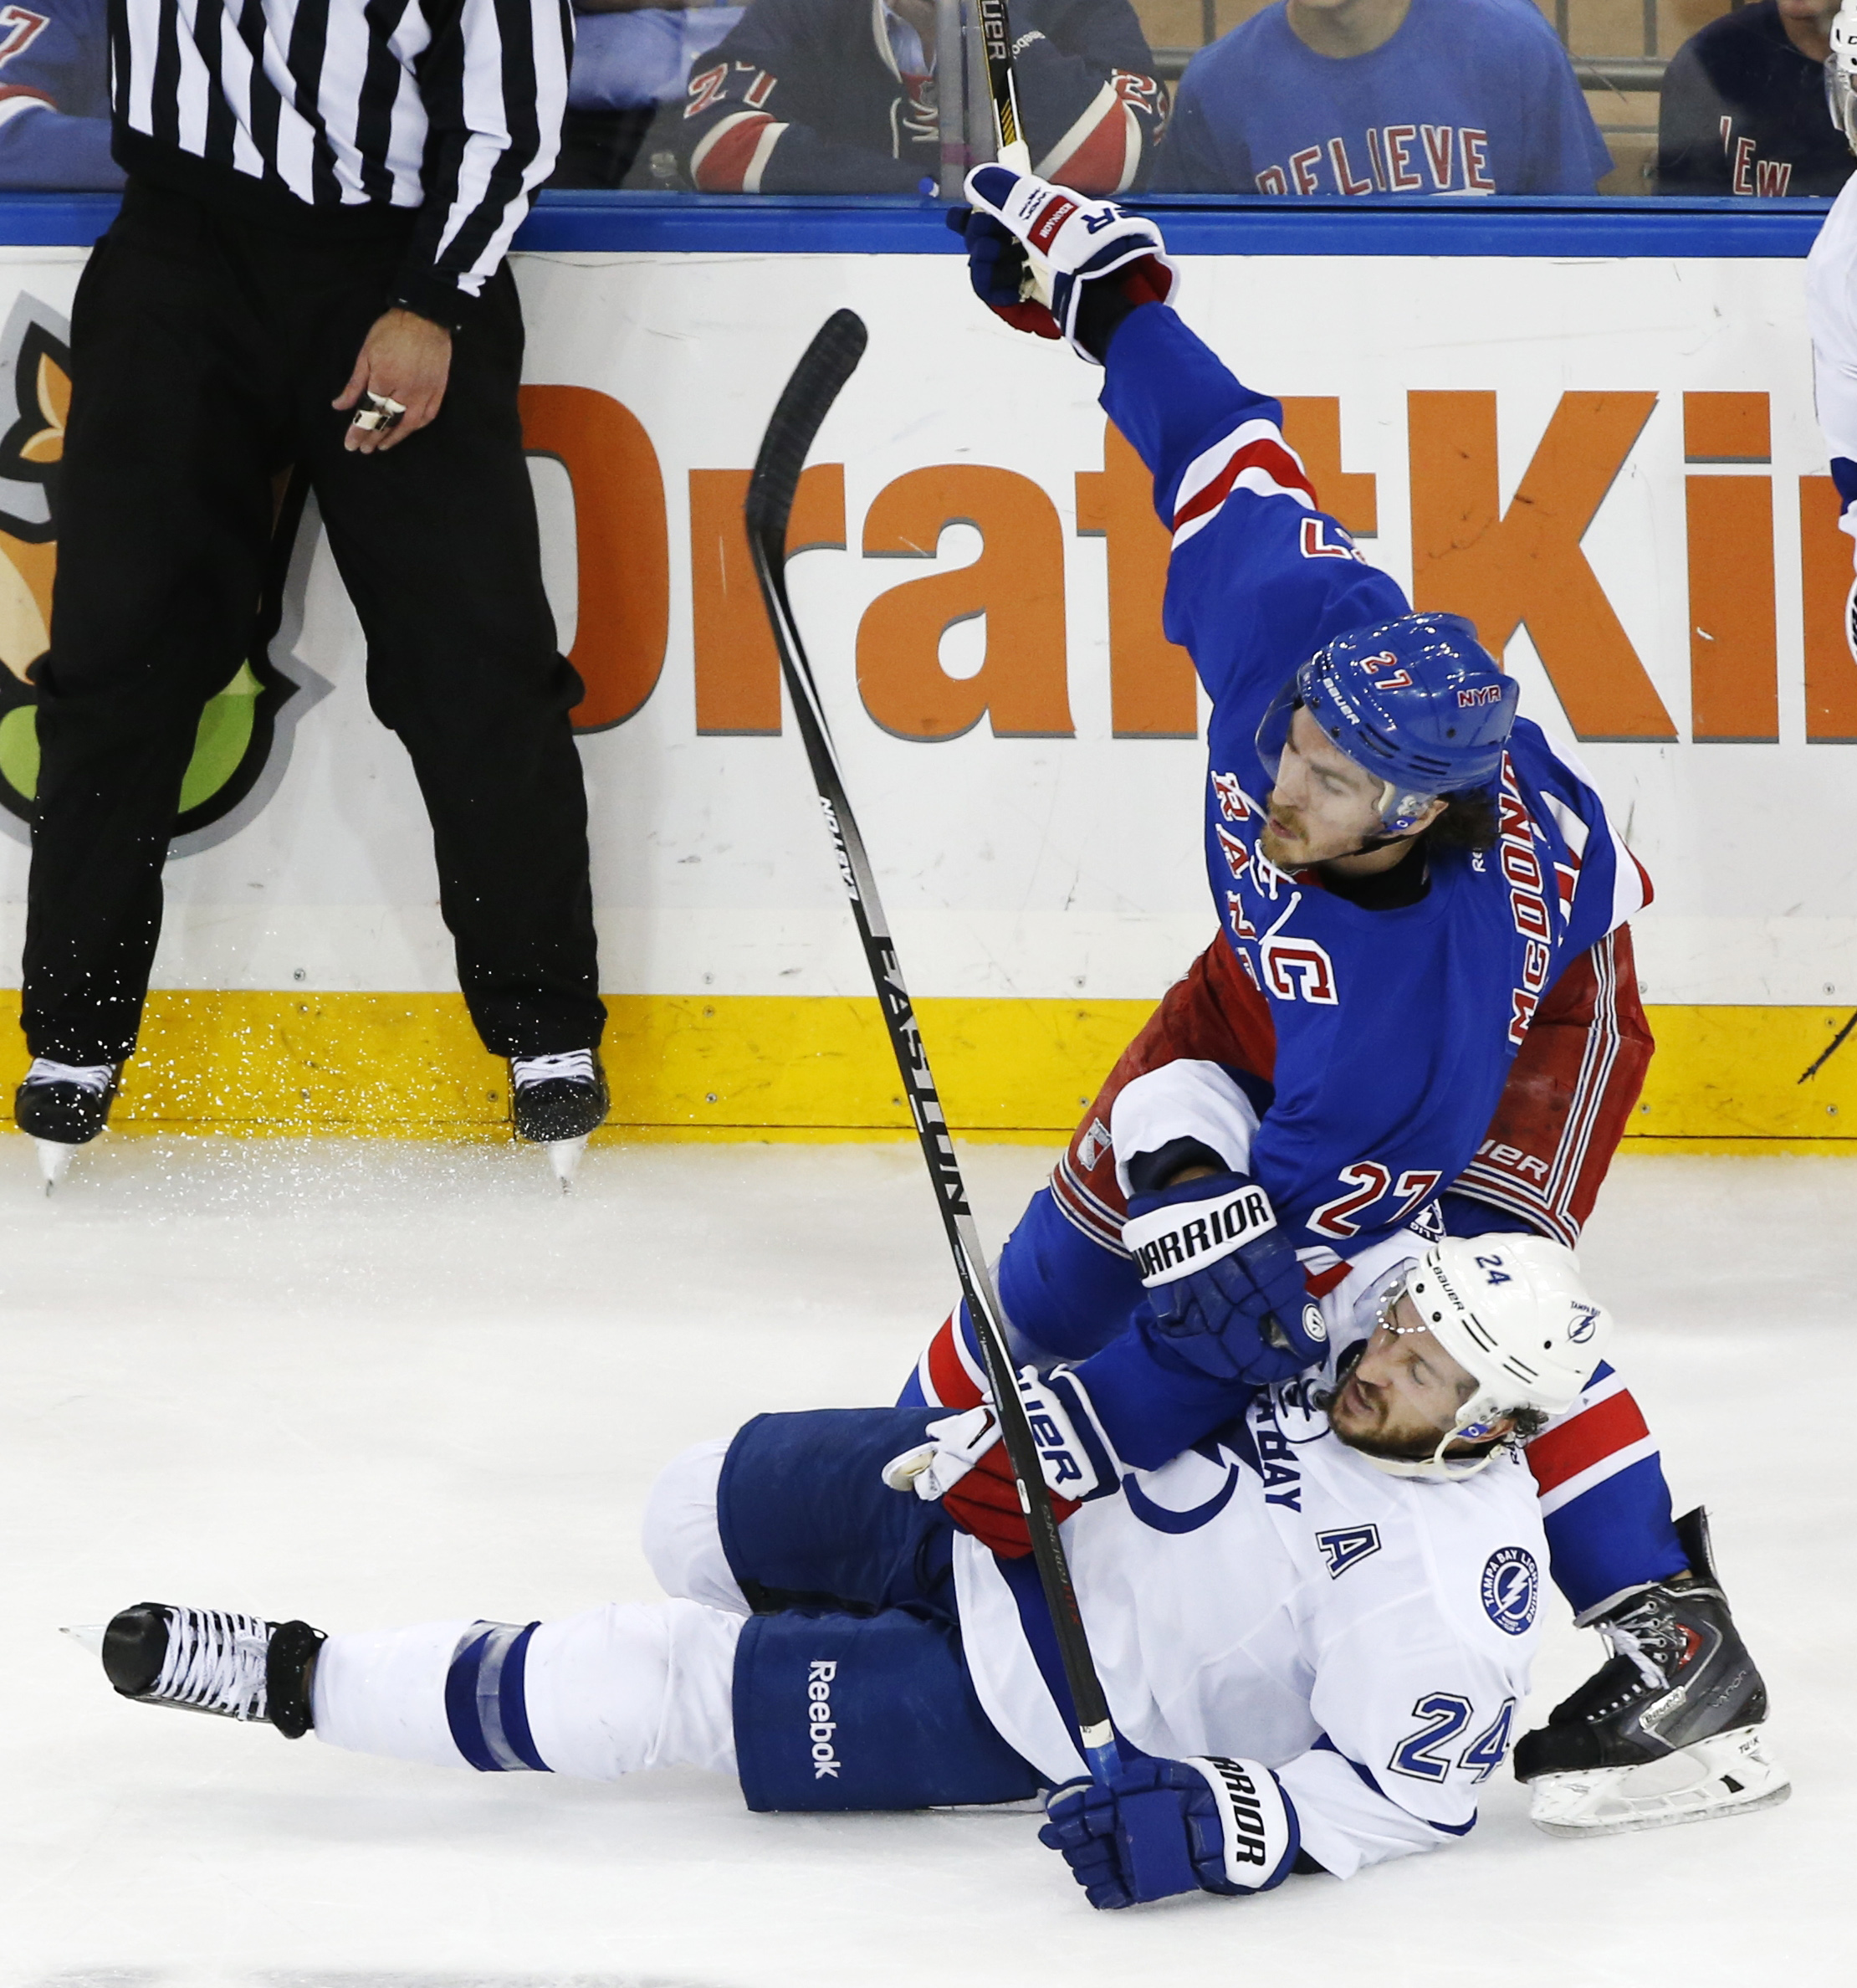 New York Rangers defenseman Ryan McDonagh (27) collides with Tampa Bay Lightning right wing Ryan Callahan (24) during the third period of Game 7 of the Eastern Conference final during the NHL hockey Stanley Cup playoffs, Friday, May 29, 2015, in New York.